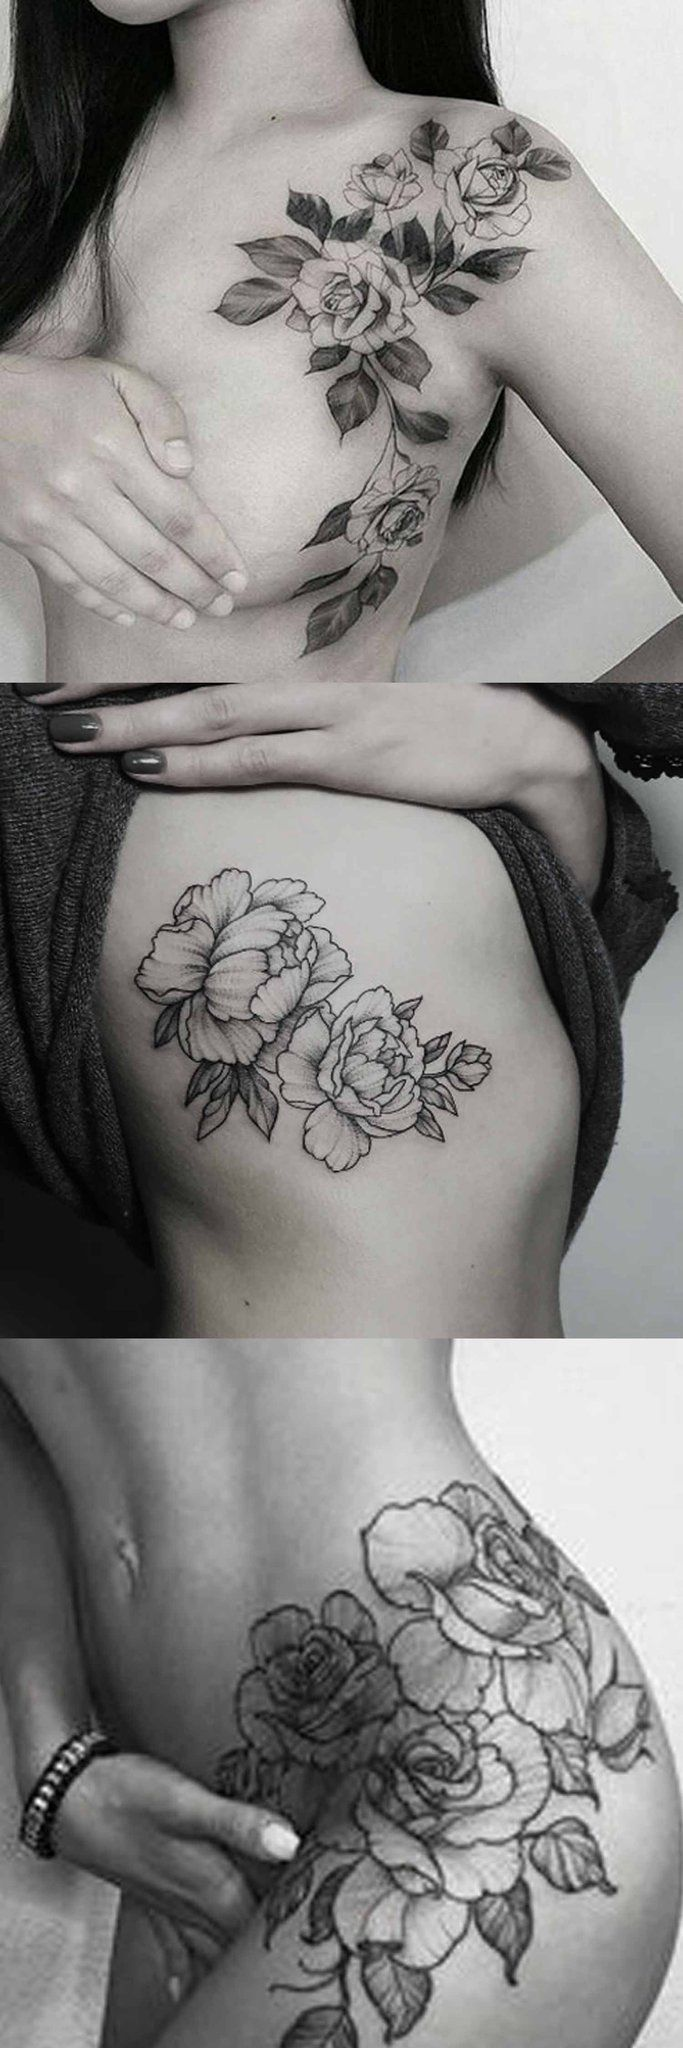 94 best tattoos images on pinterest | beautiful, botany and draw